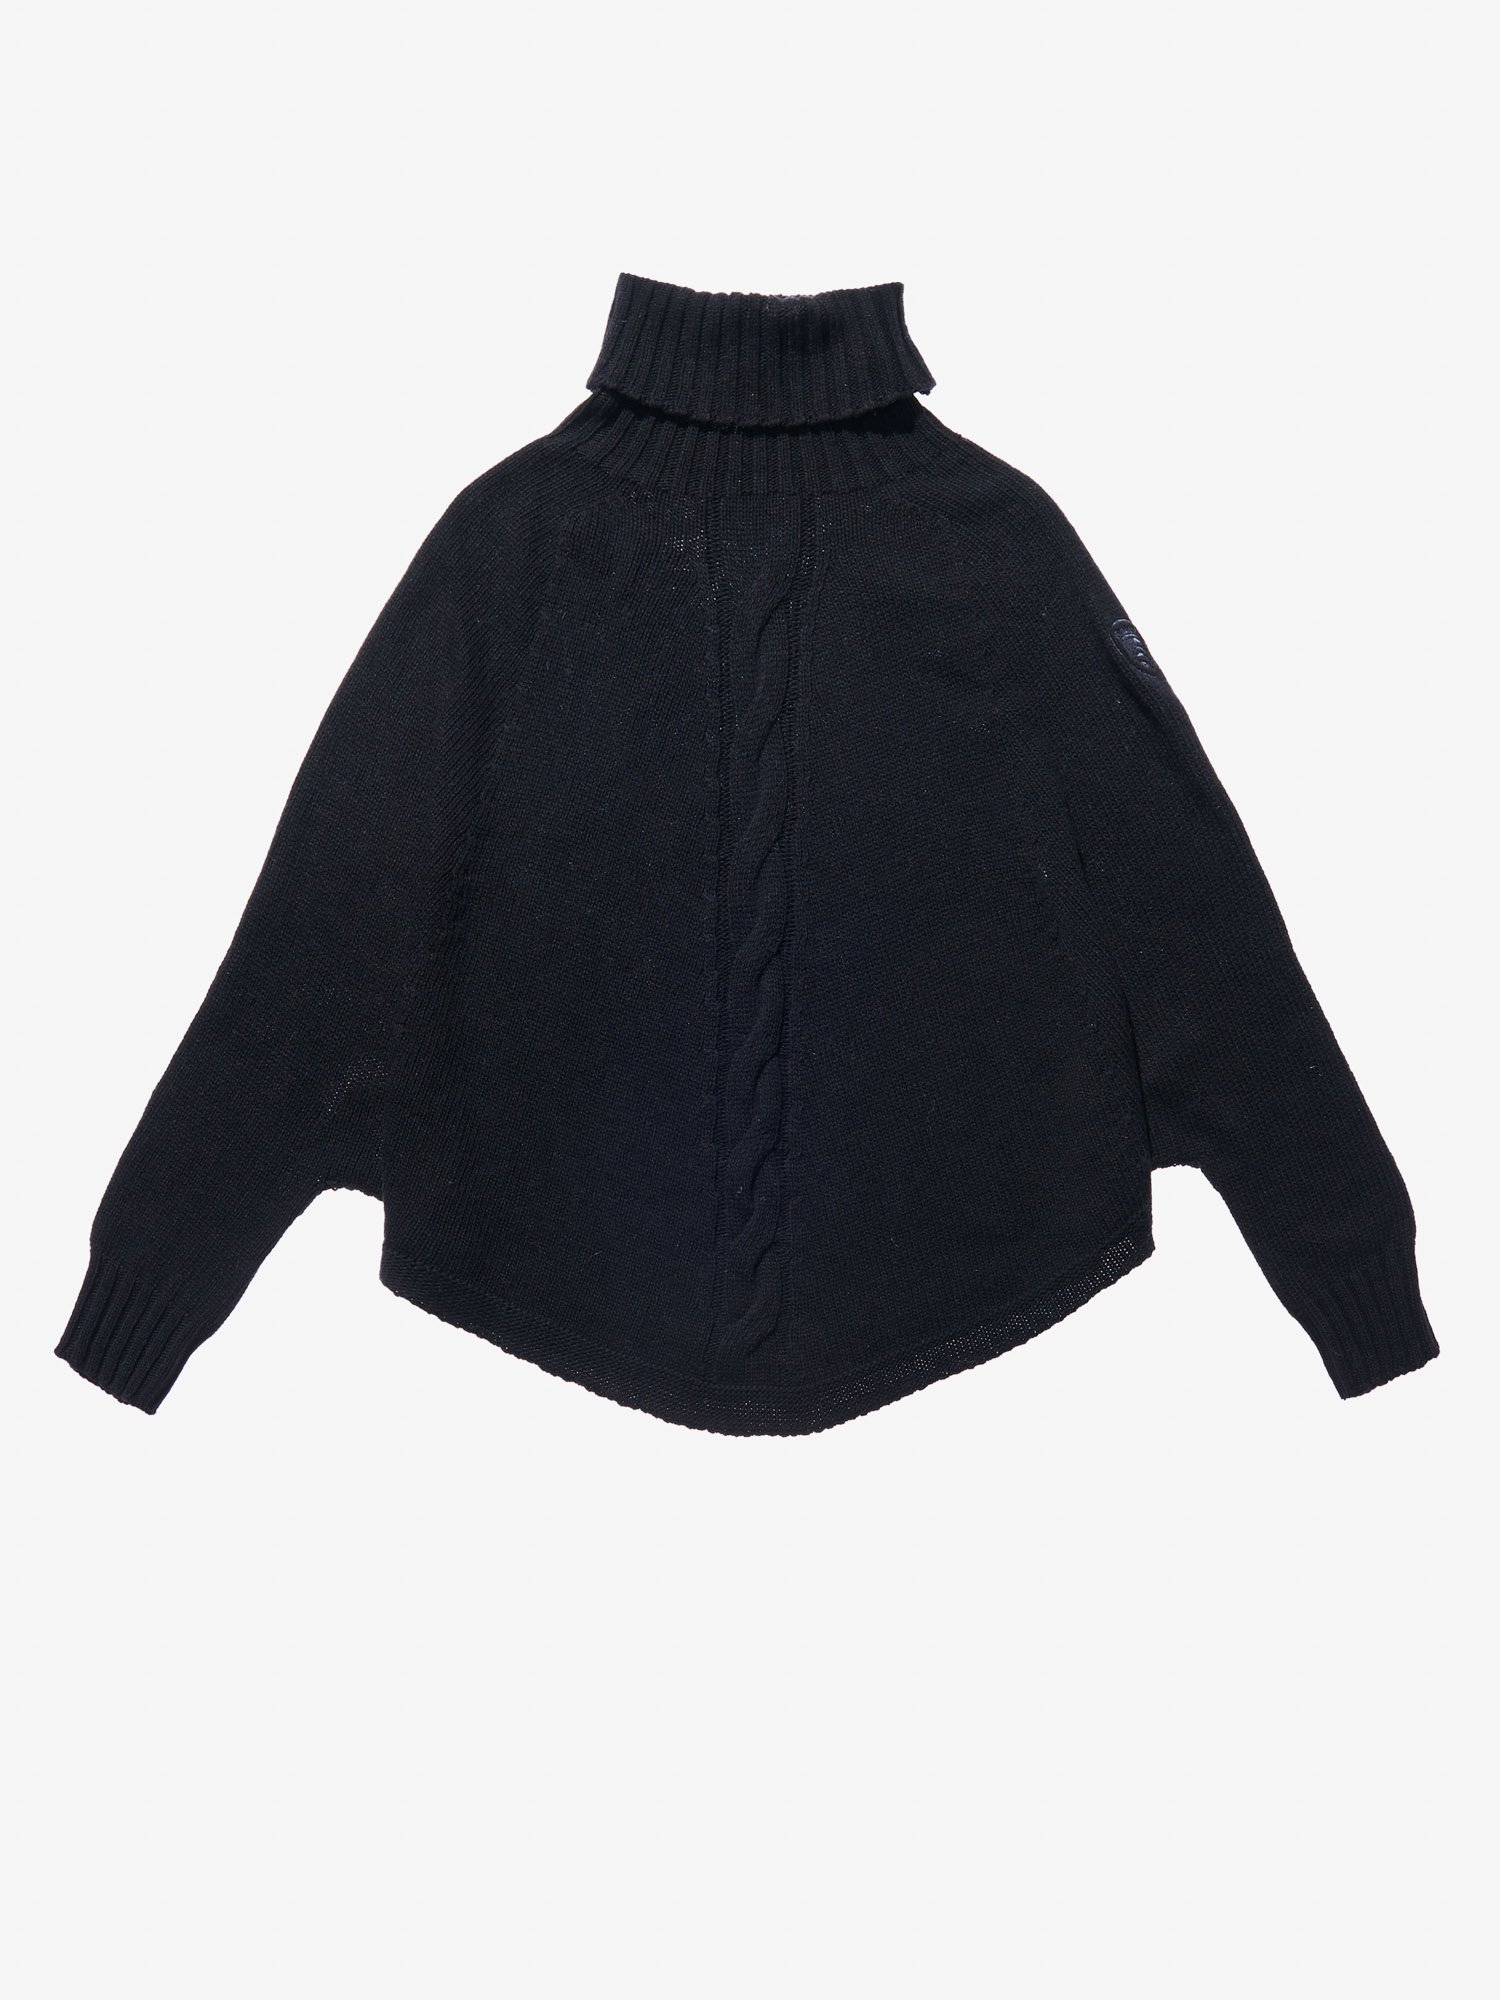 Blauer - CAPE STYLE SWEATER - Black - Blauer